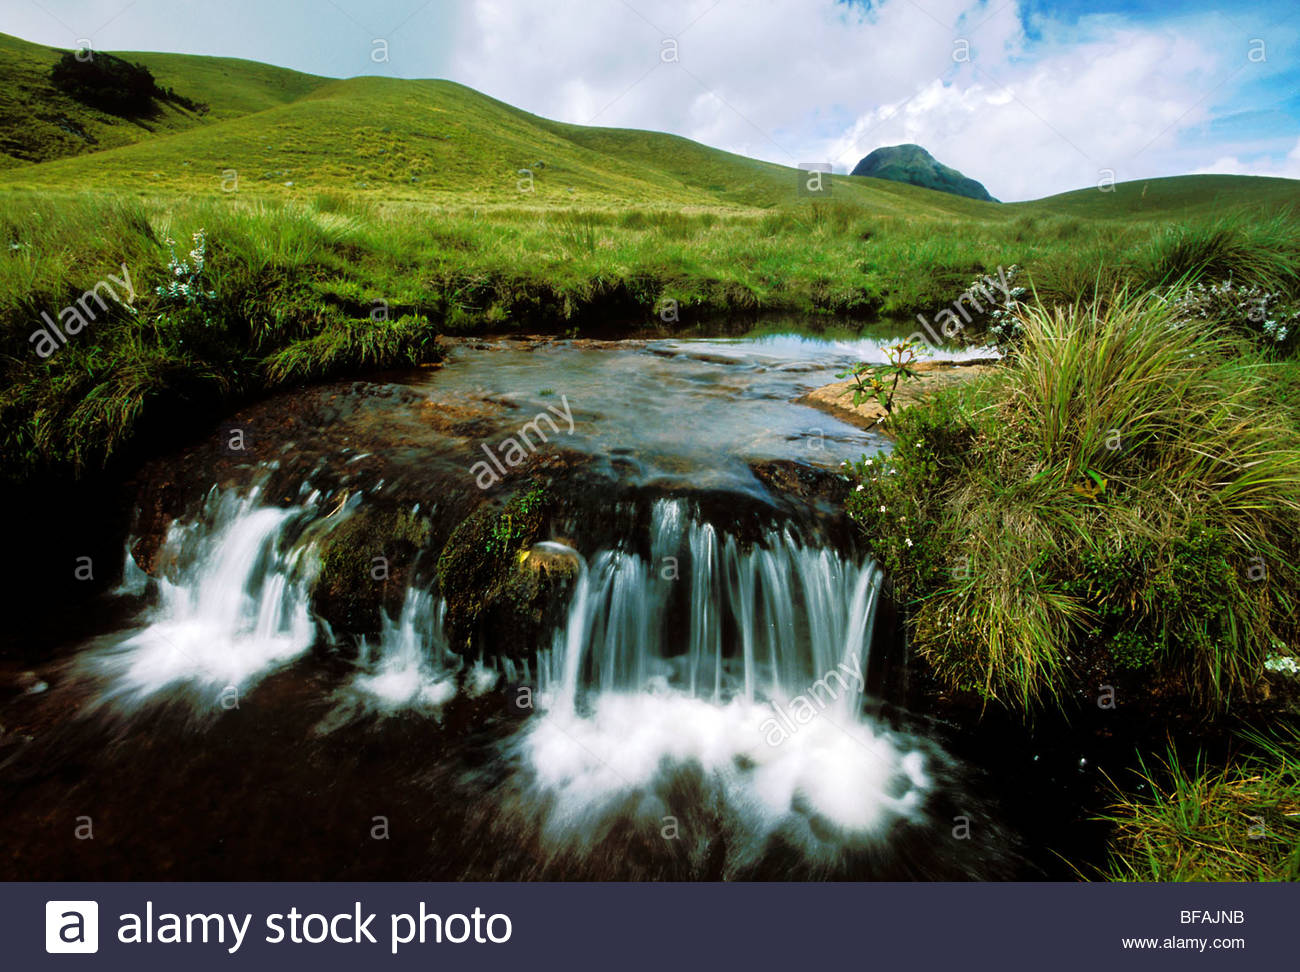 Stream in alpine grassland, Eravikulum National Park, Western Ghats, India - Stock Image